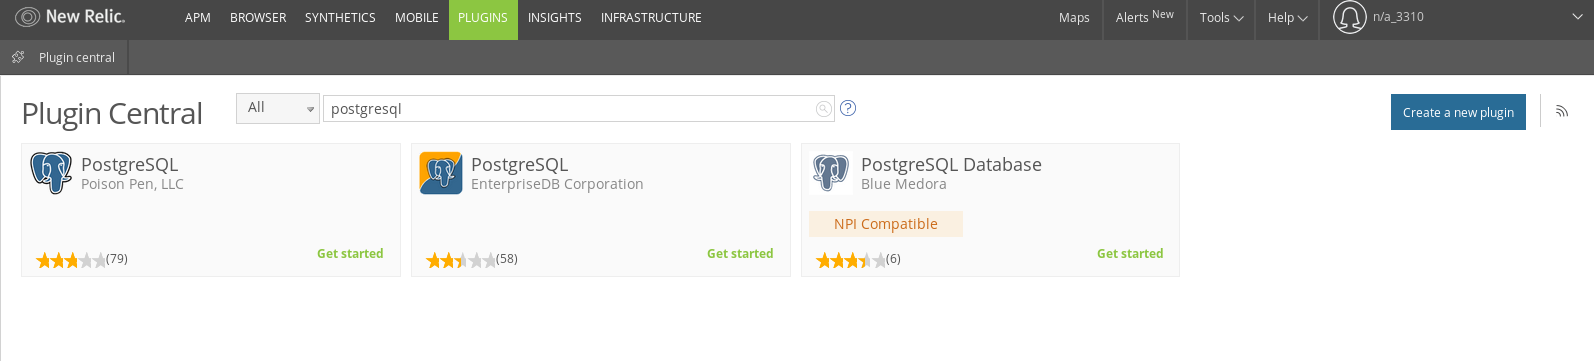 New Relic PostgreSQL plugin from Blue Medora